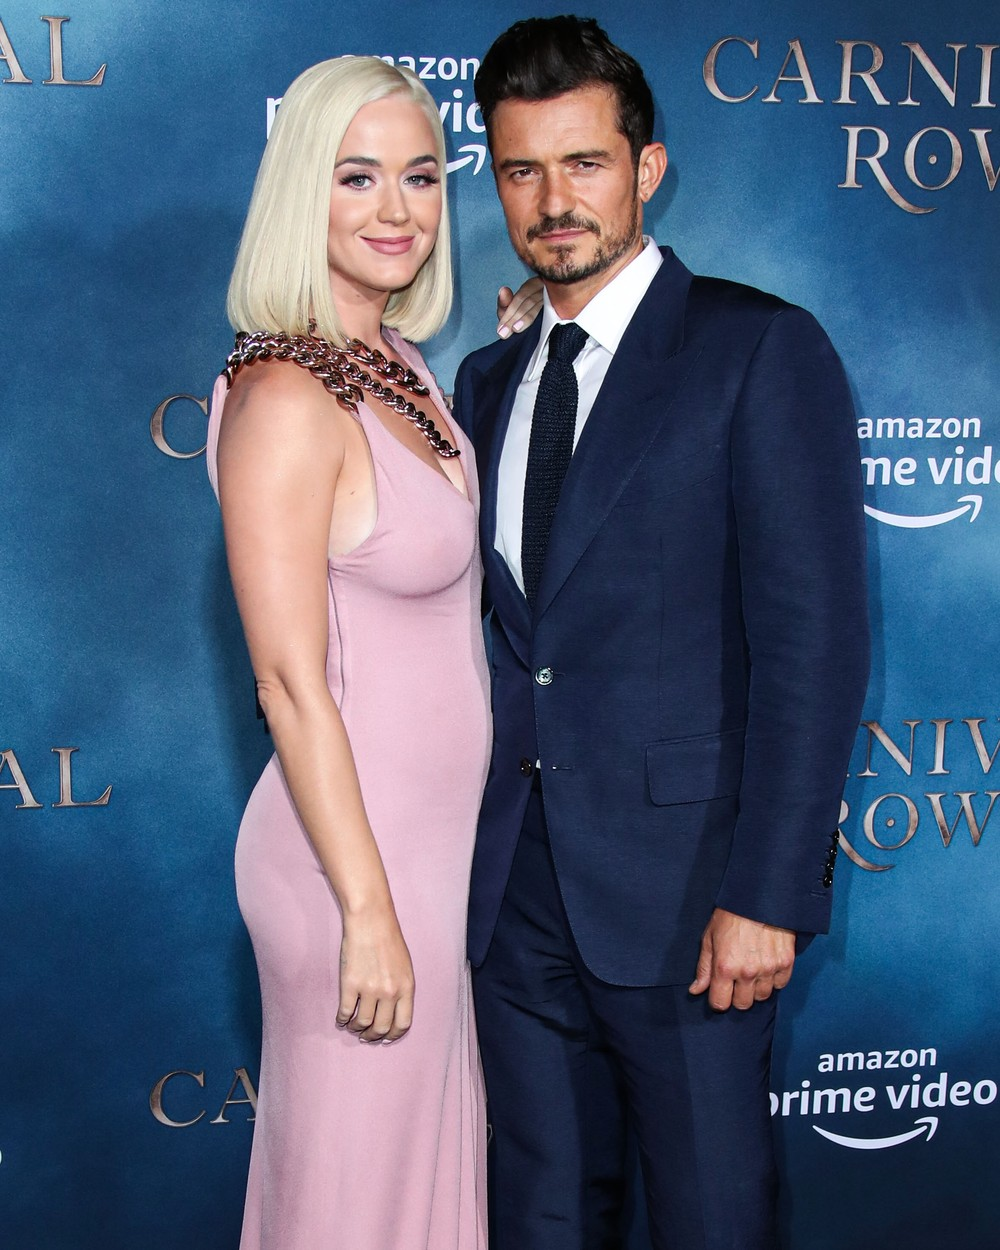 (FILE) Katy Perry Announces She's Expecting a Baby Girl with Orlando Bloom. Katy Perry announced on Friday that she and Orlando Bloom will be welcoming a baby girl this summer on Instagram. HOLLYWOOD, LOS ANGELES, CALIFORNIA, USA - AUGUST 21: Singer Katy Perry and fiance/actor Orlando Bloom arrive at the Los Angeles Premiere Of Amazon's 'Carnival Row' held at the TCL Chinese Theatre IMAX on August 21, 2019 in Hollywood, Los Angeles, California, United States., Image: 503461557, License: Rights-managed, Restrictions: WORLD RIGHTS - Fee Payable Upon Reproduction - For queries contact Avalon.red - sales@avalon.red London: +44 (0) 20 7421 6000 Los Angeles: +1 (310) 822 0419 Berlin: +49 (0) 30 76 212 251, Model Release: no, Credit line: Image Press Agency/Avalon.red / Pacific coast news / Profimedia